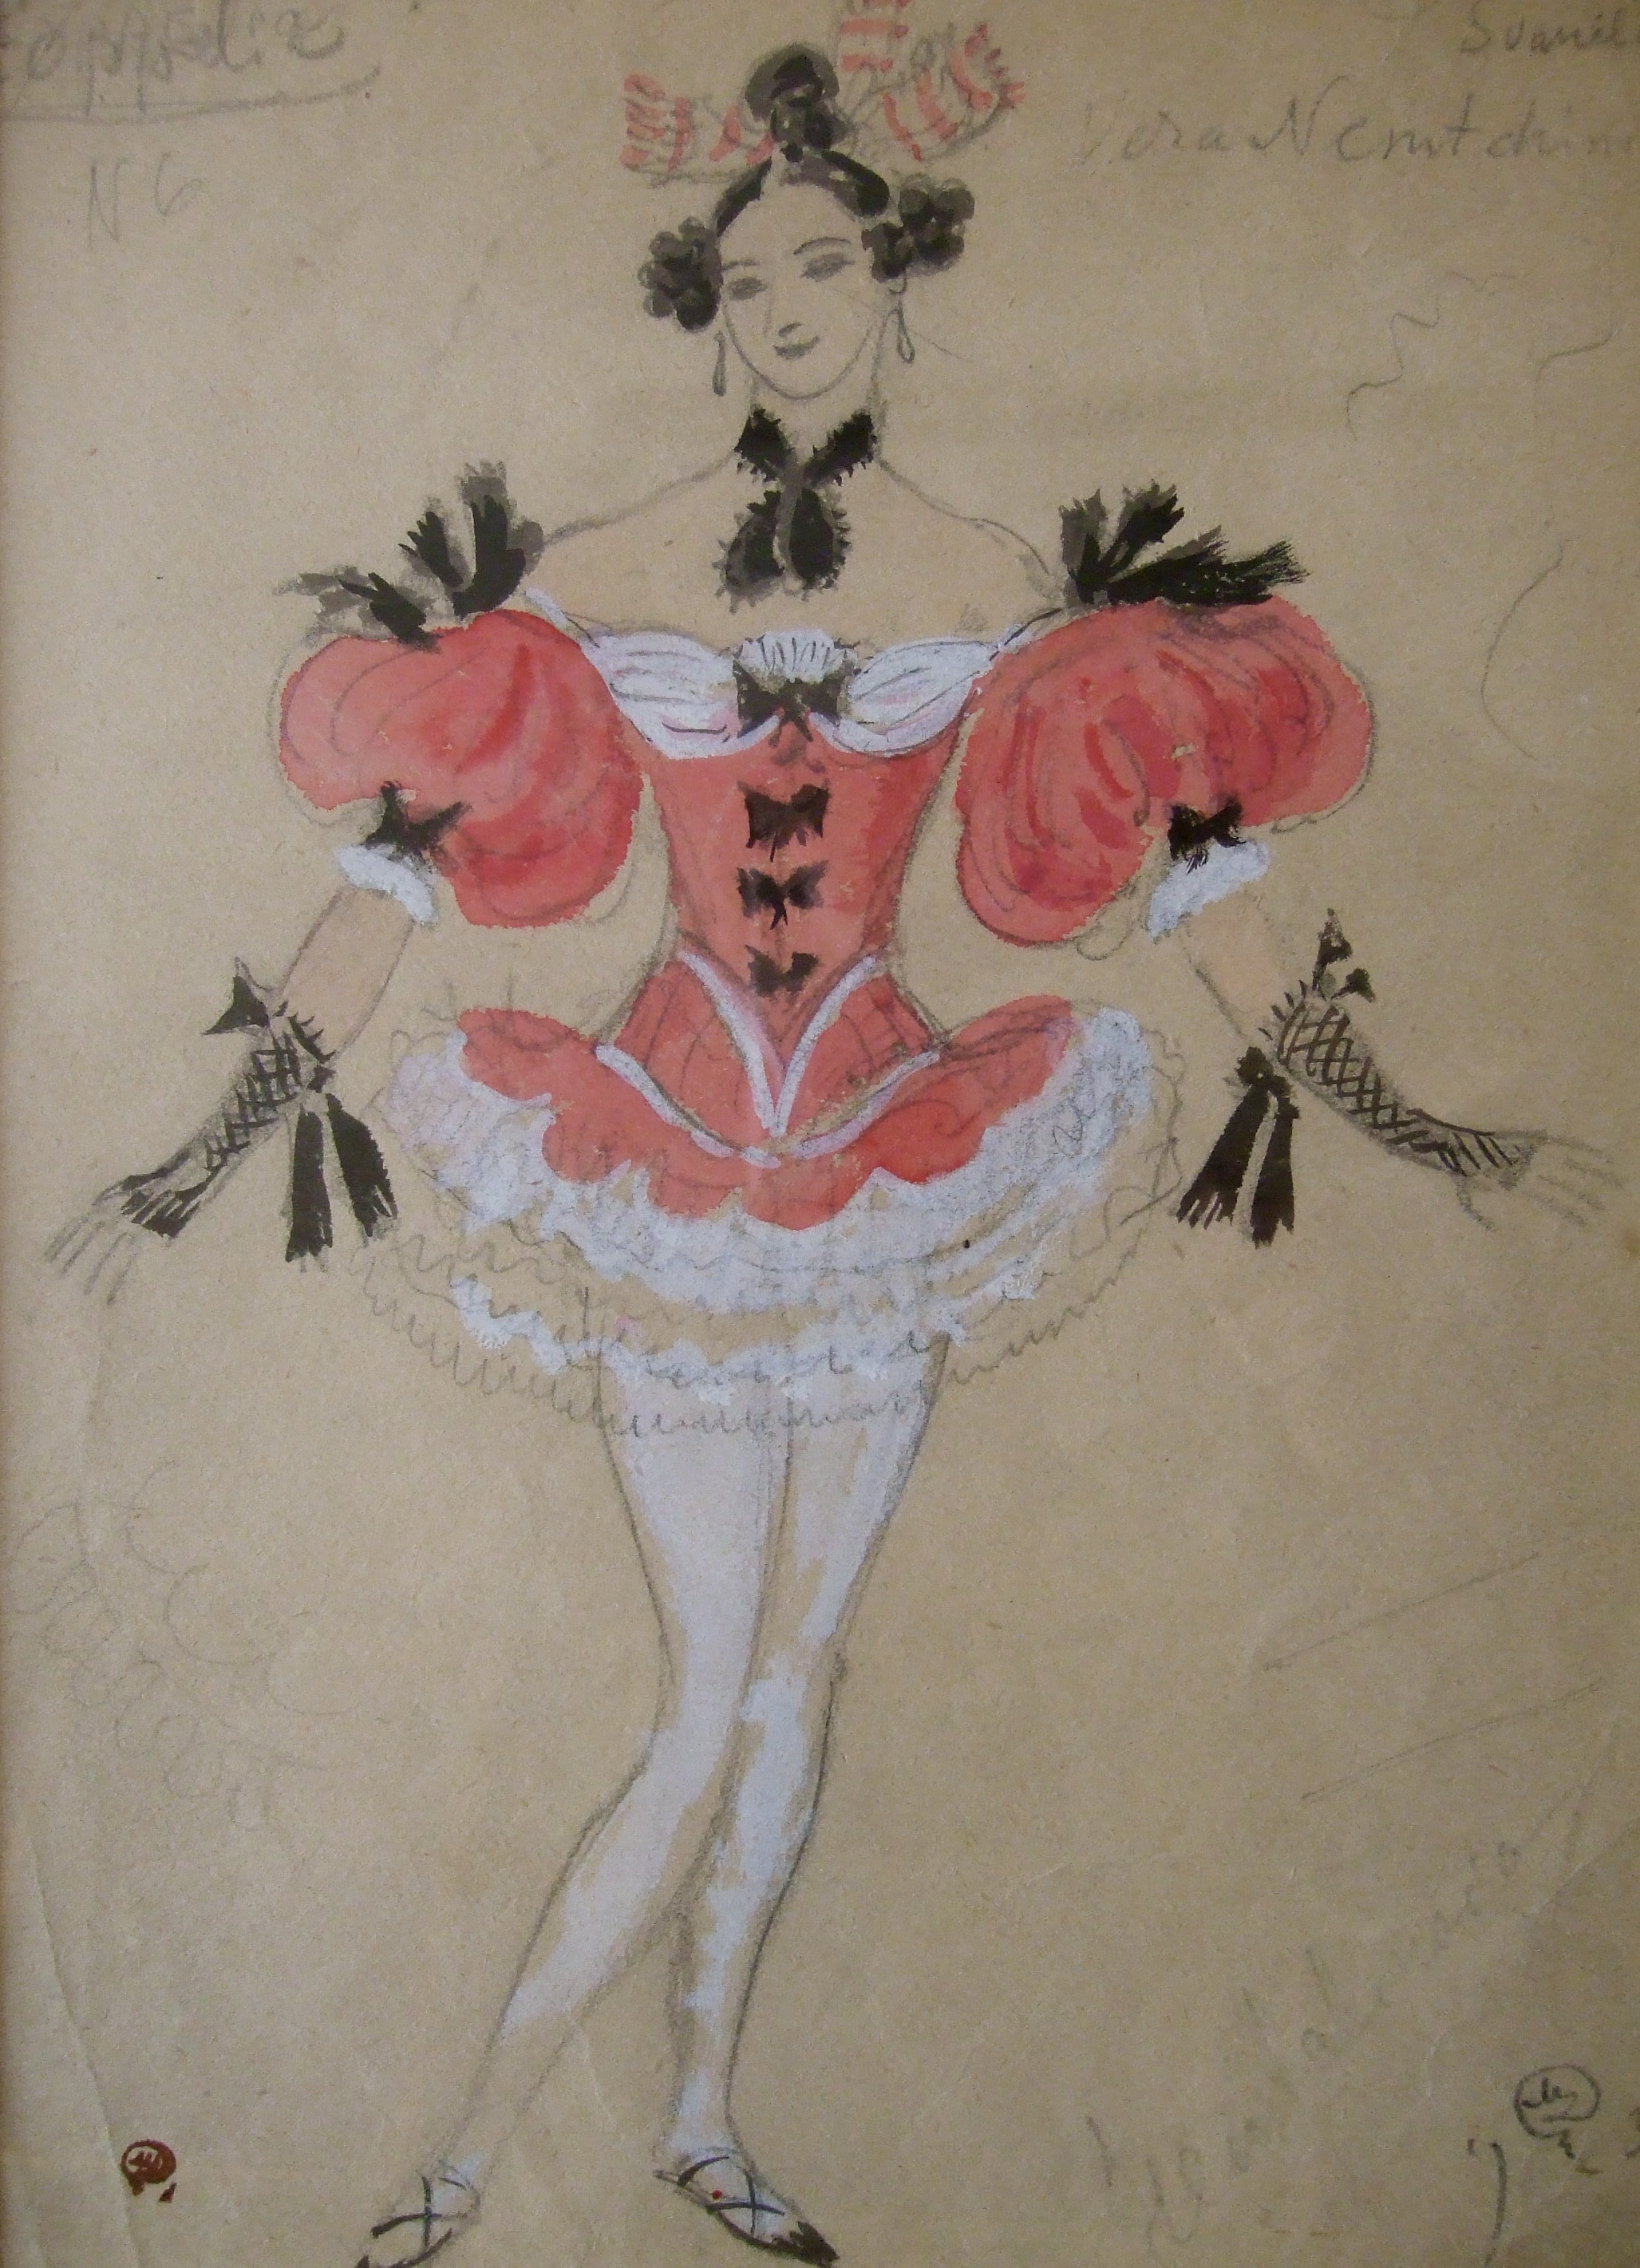 """Costume design for ballet """"Coppelia"""".  Costume design for ballet production Coppelia. Gouache on paper, signed and stamped with artist's studio stamp. Size: 31 x 22 cm."""